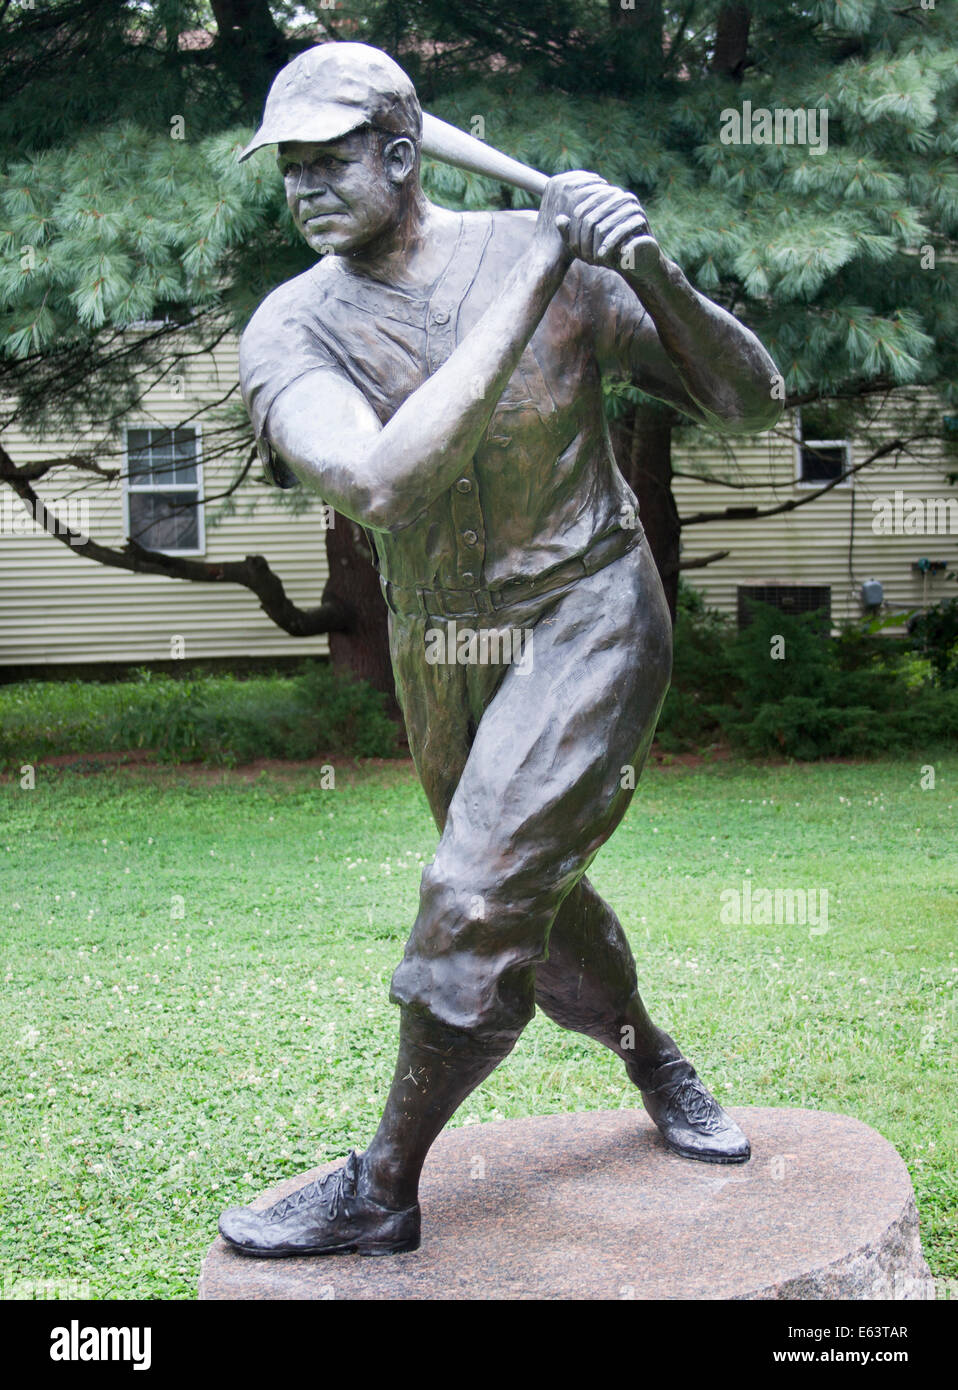 Légende de baseball James Foxx statue dans un parc à Sudlersville Maryland Photo Stock